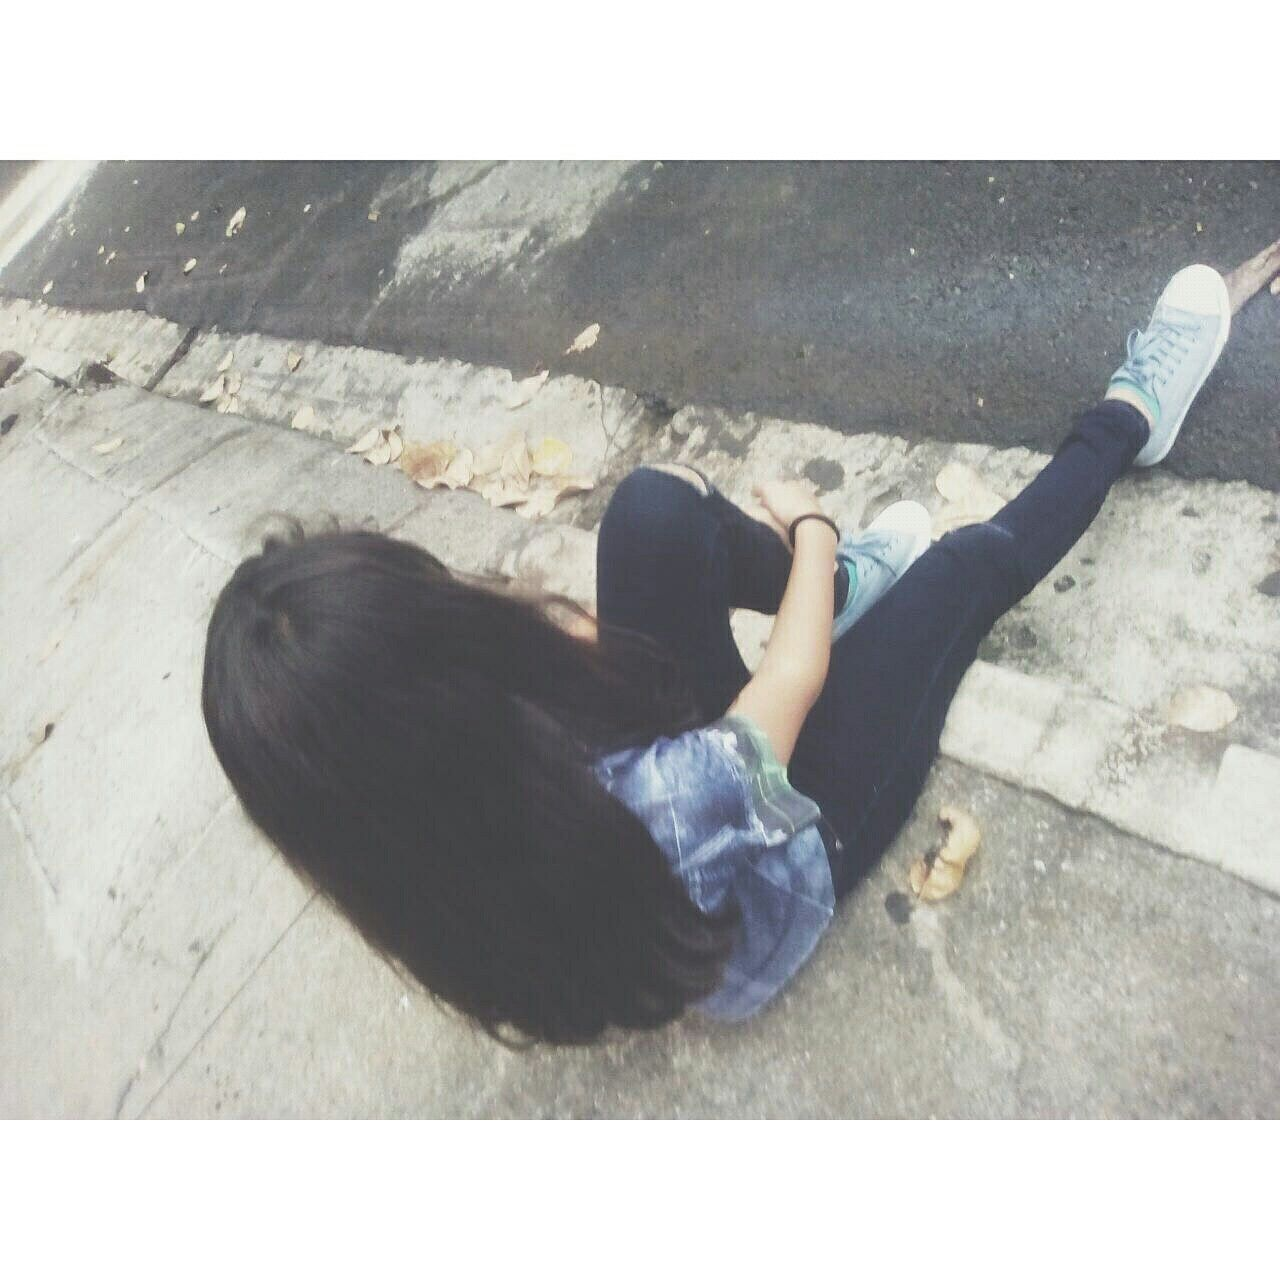 Fotos Tumblr Teenage Girl Photography Tumblr Photography Profile Pictures Instagram